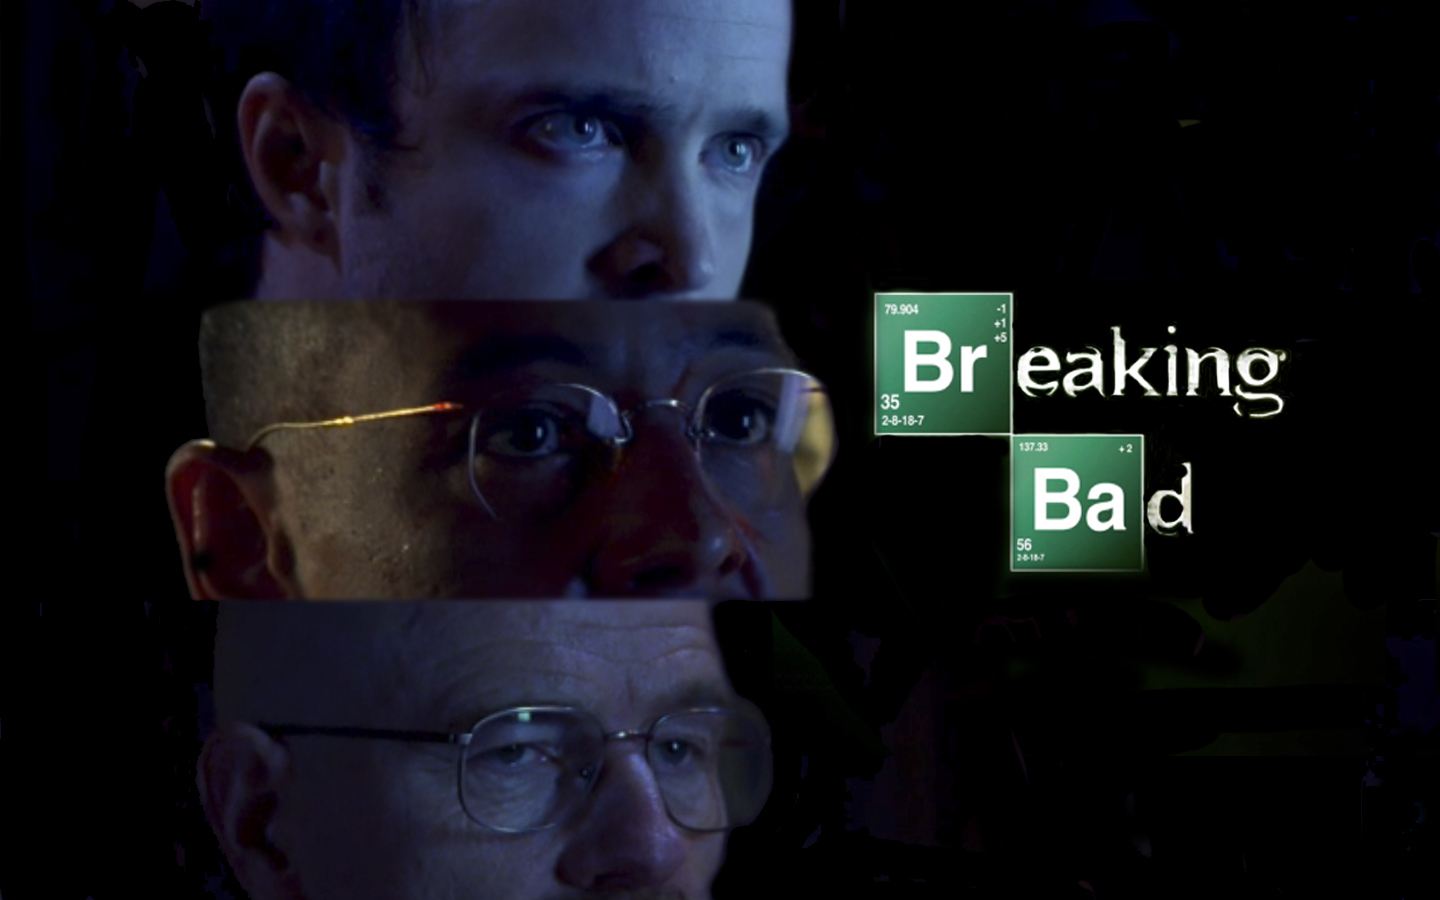 breaking-bad-wallpapers-hd-to-download-for-free_03